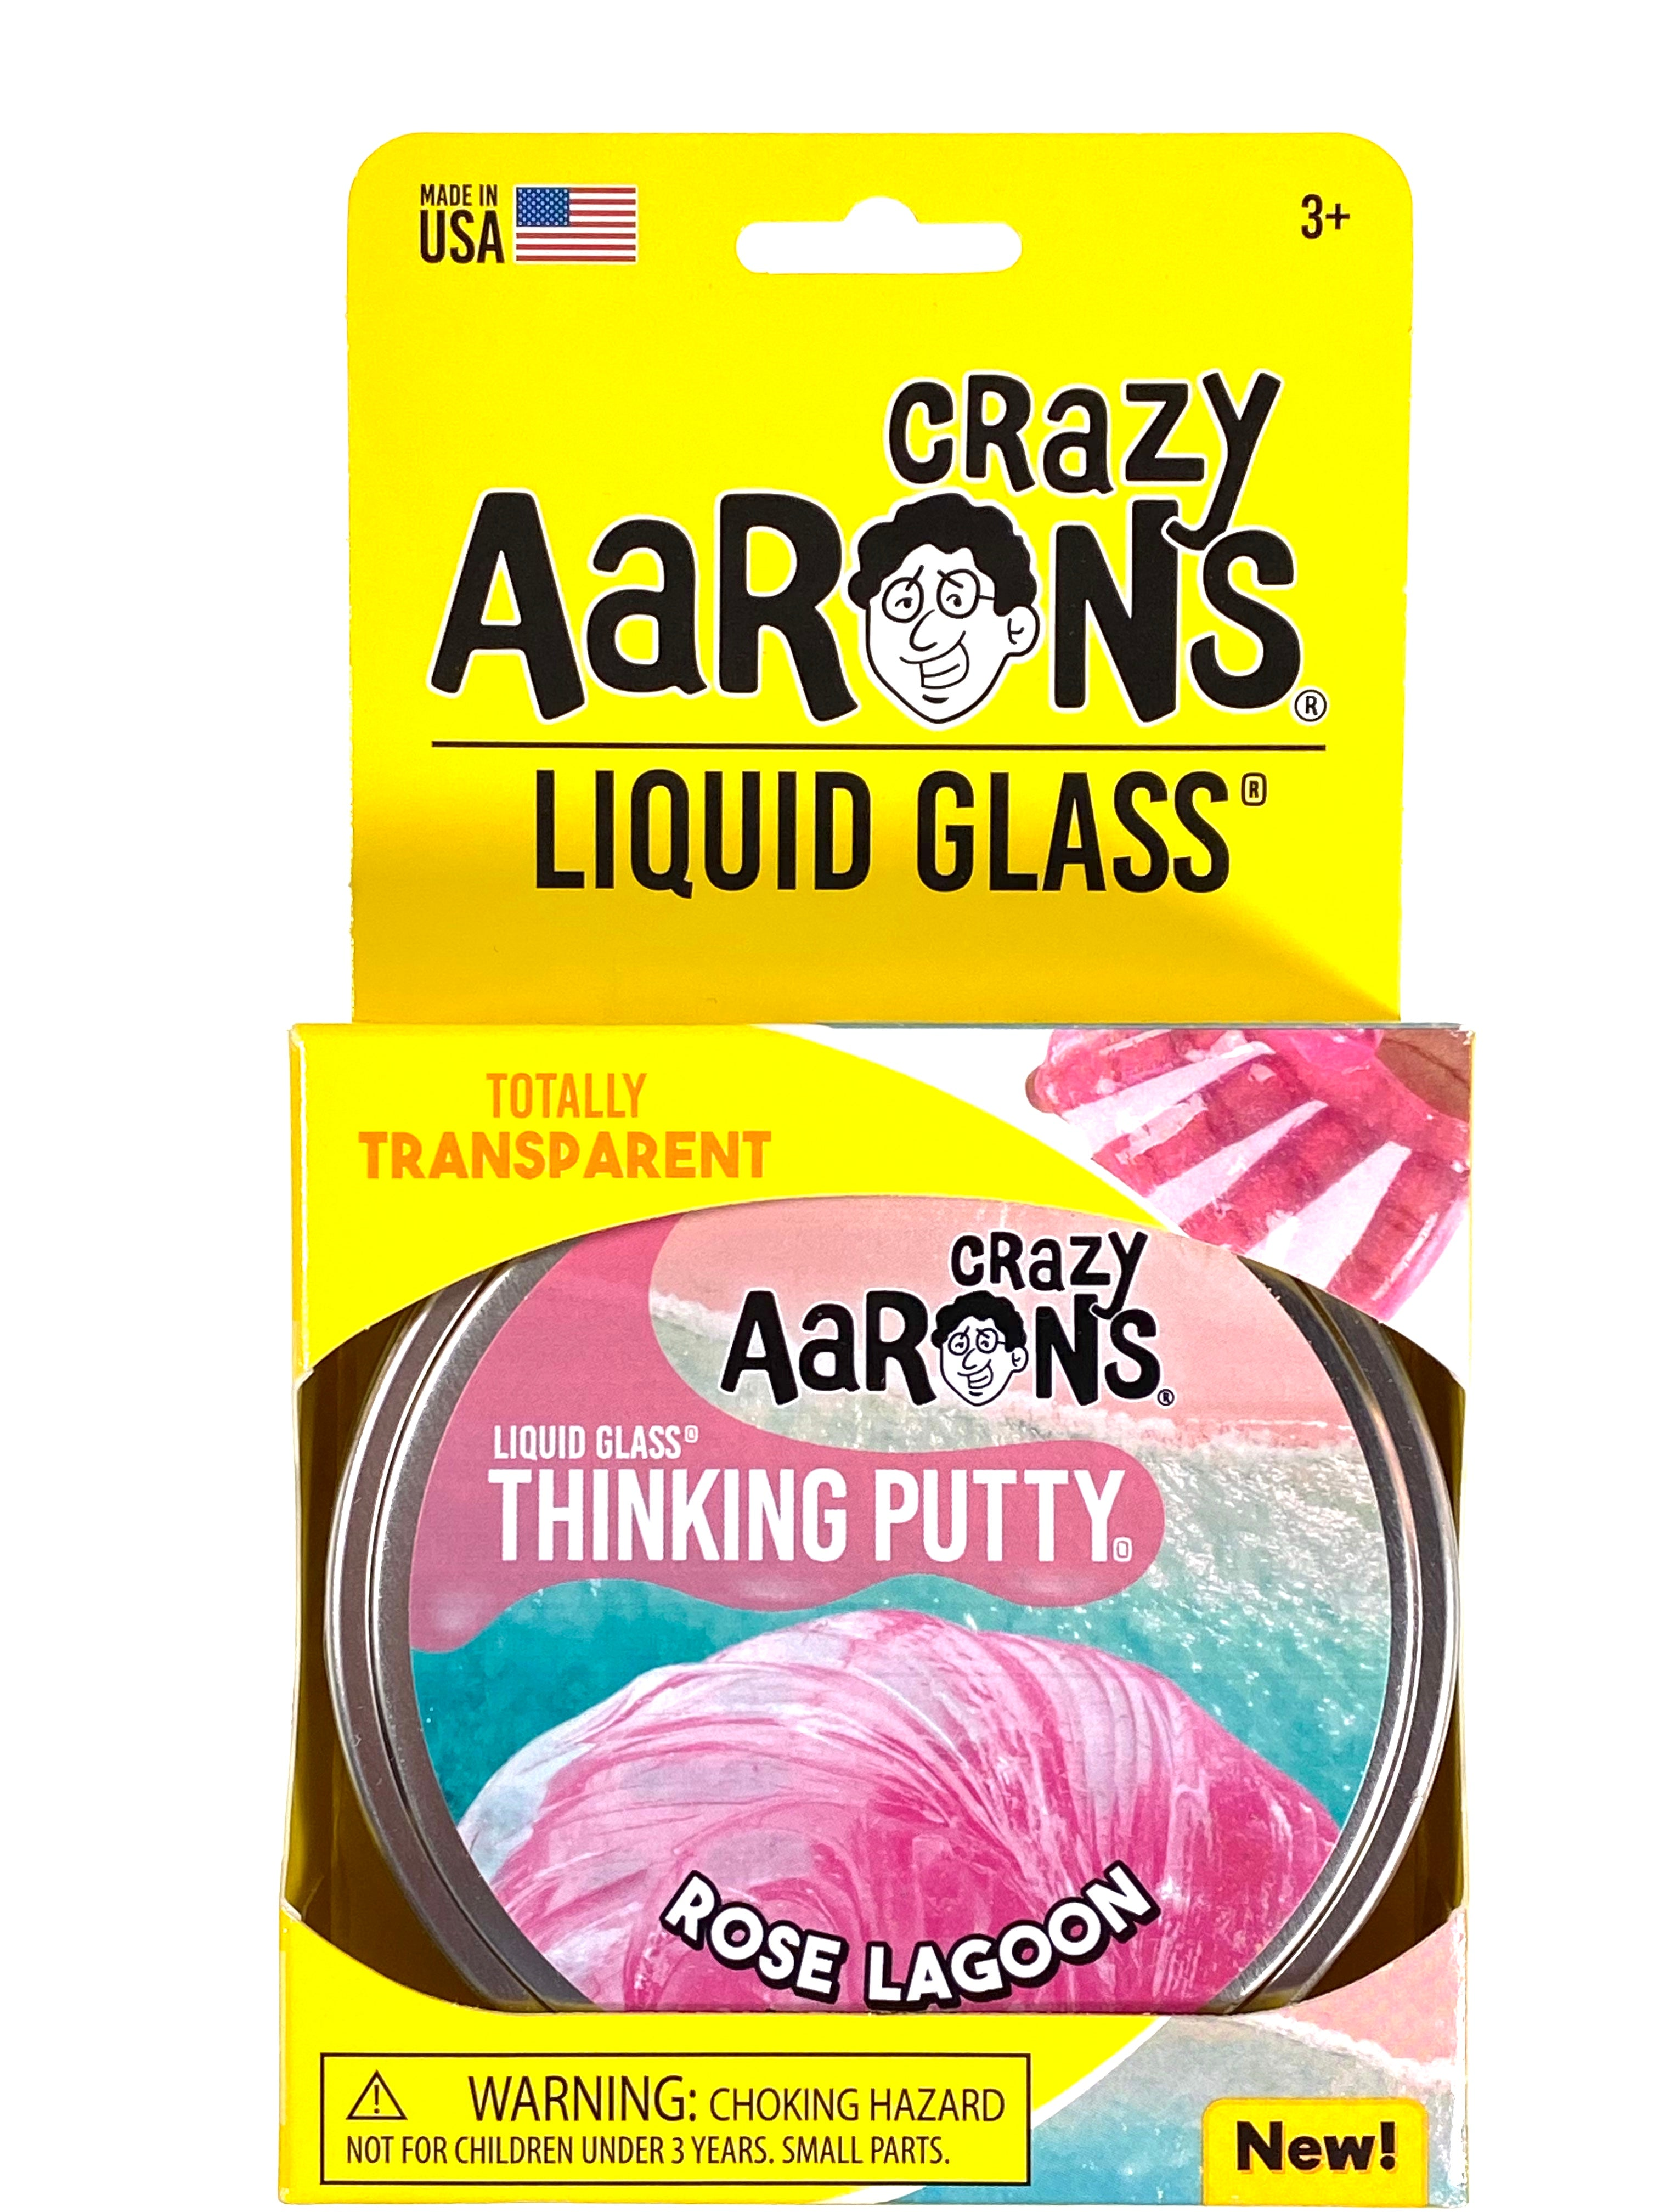 Rose Lagoon Thinking Putty